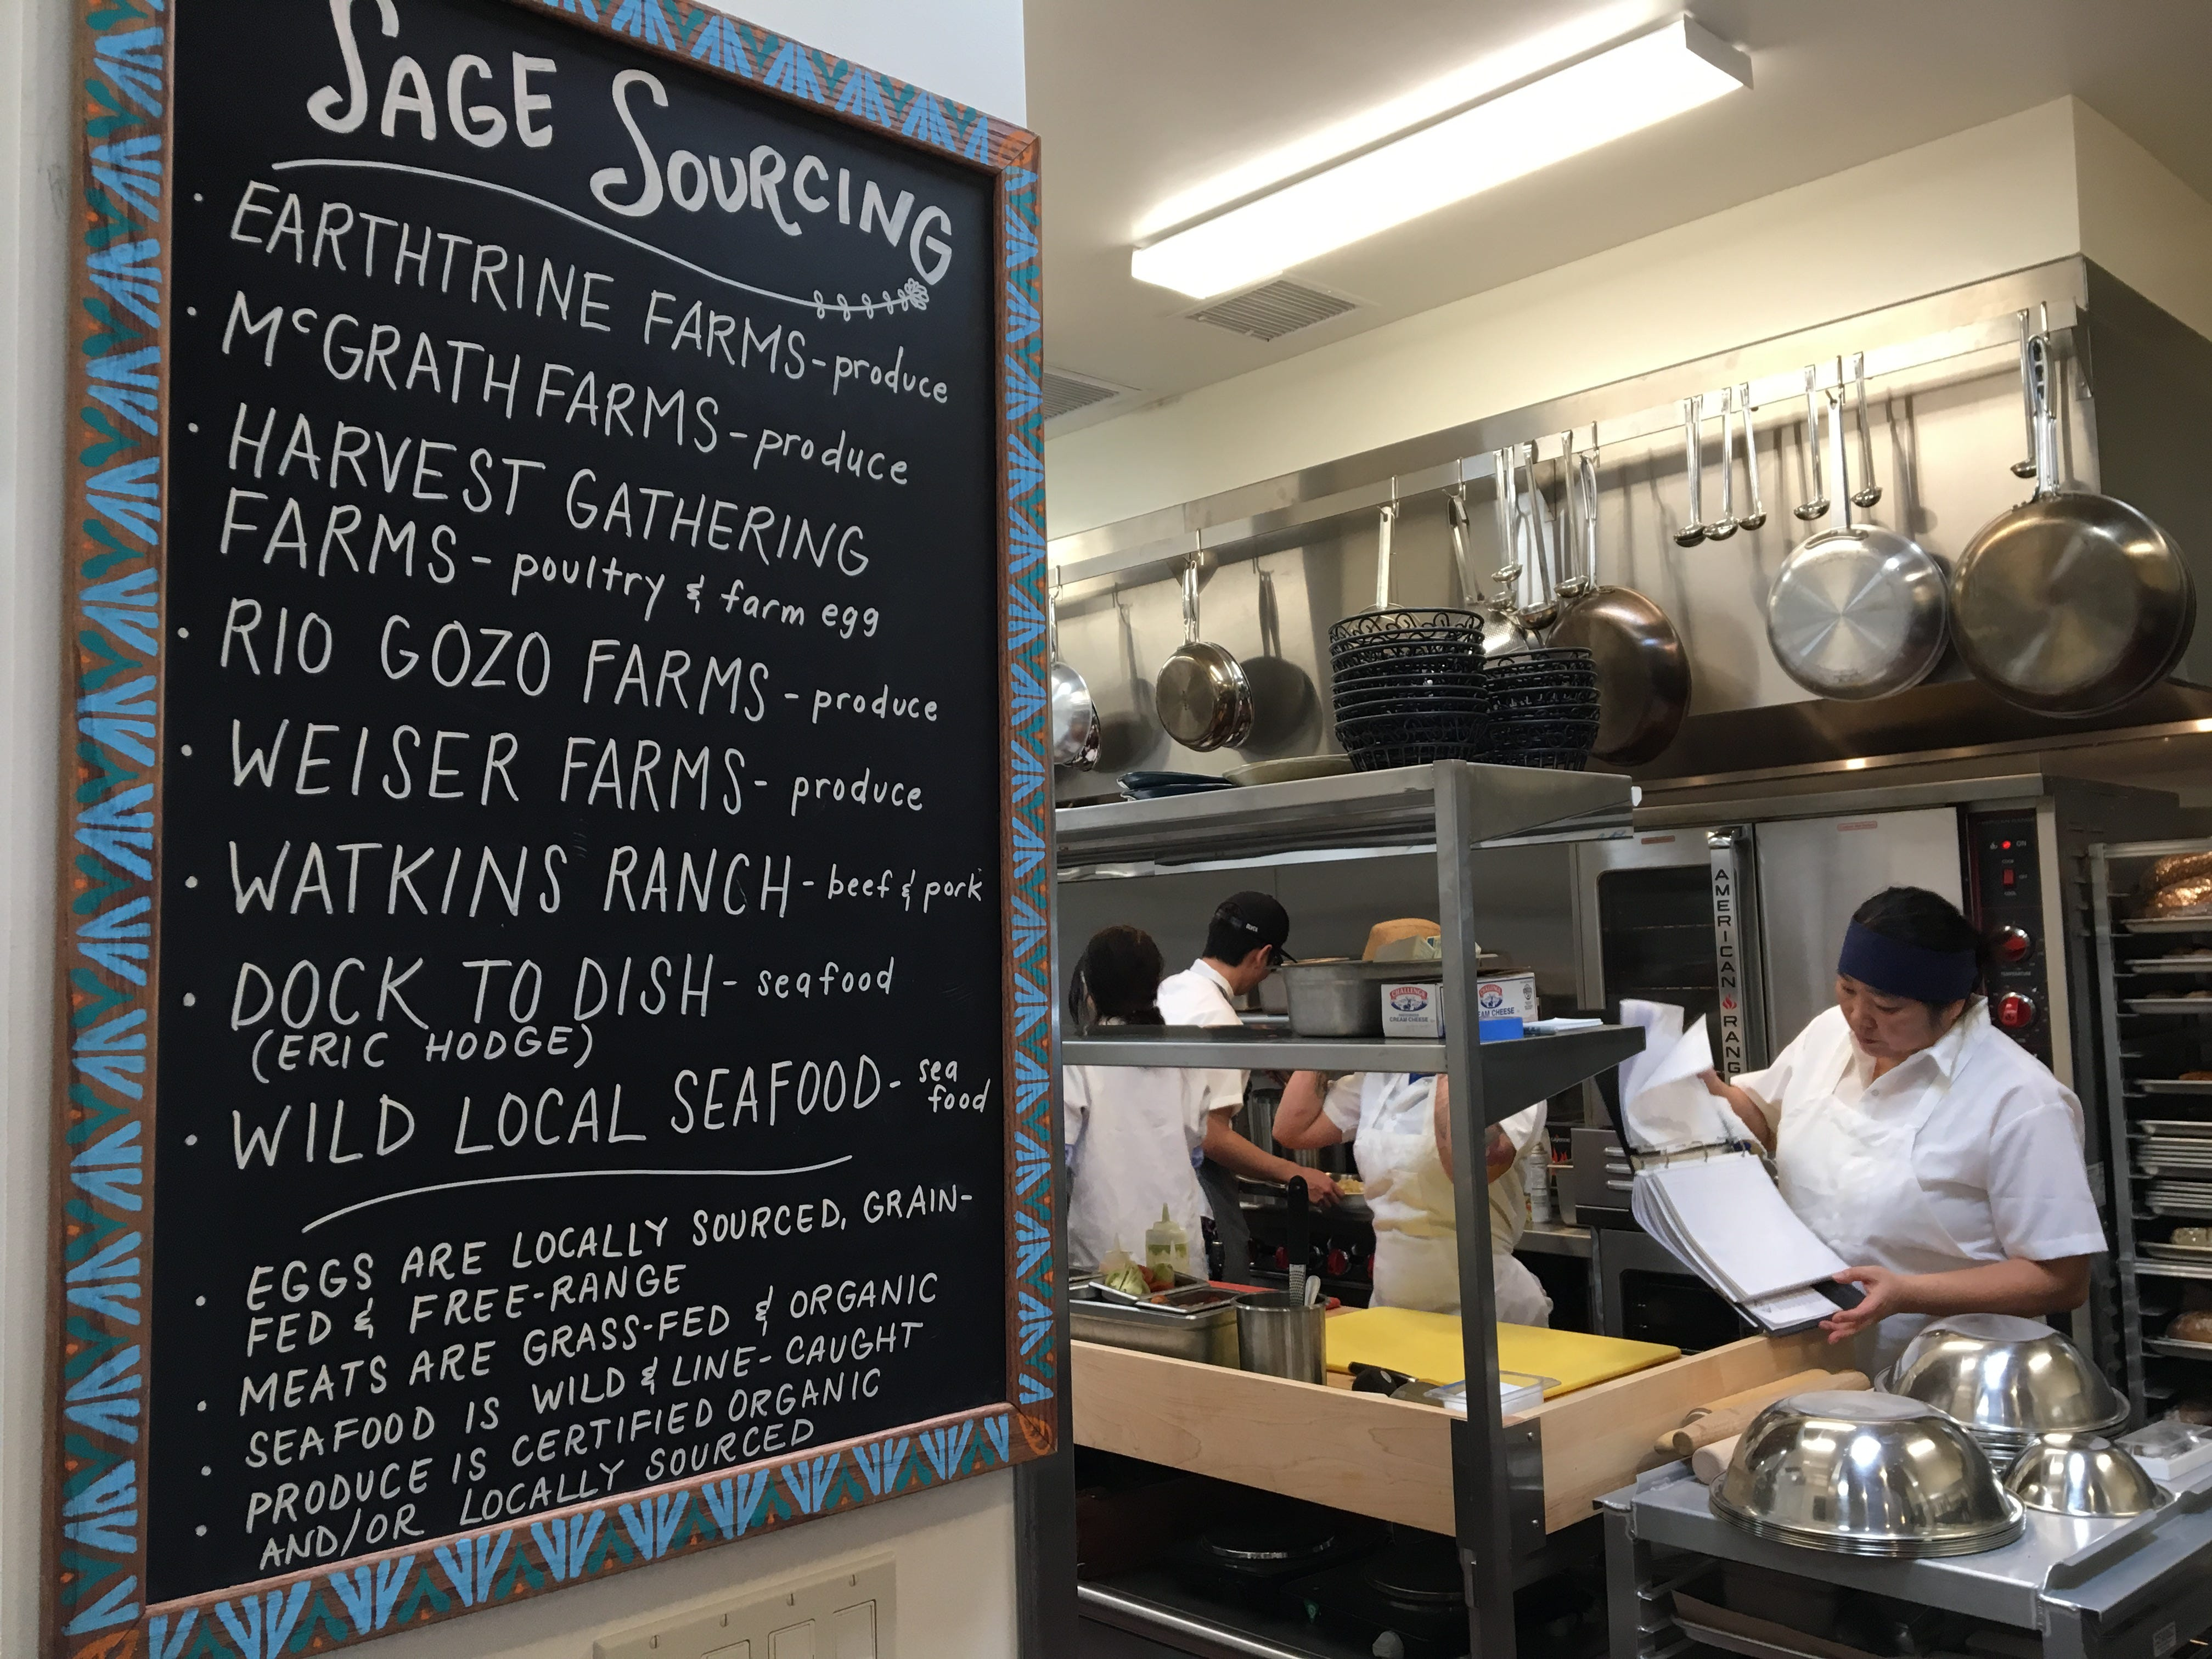 Local purveyors are listed on a chalkboard near the kitchen at Sage Mindful Meals & Elixirs in Ojai. The restaurant is open for breakfast and lunch, with plans to launch dinner service in the spring.